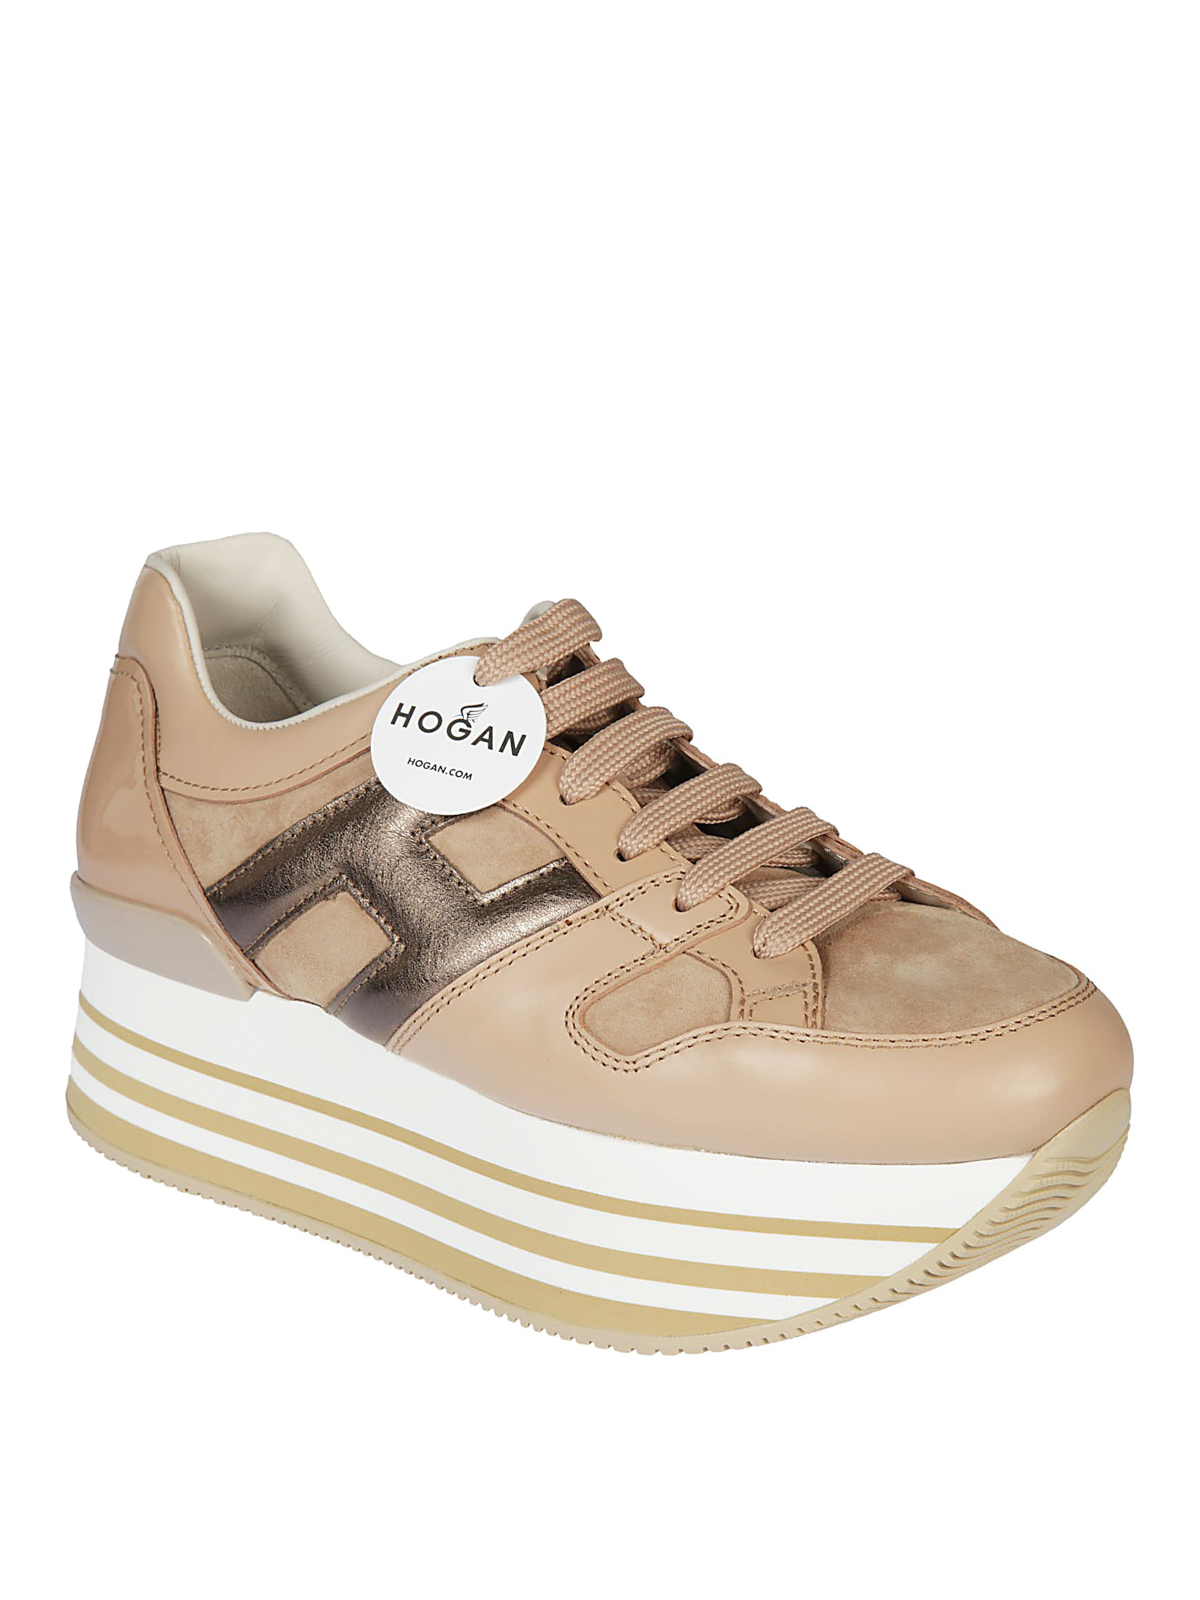 Hogan - Maxi H222 pink leather and suede sneakers - trainers ...